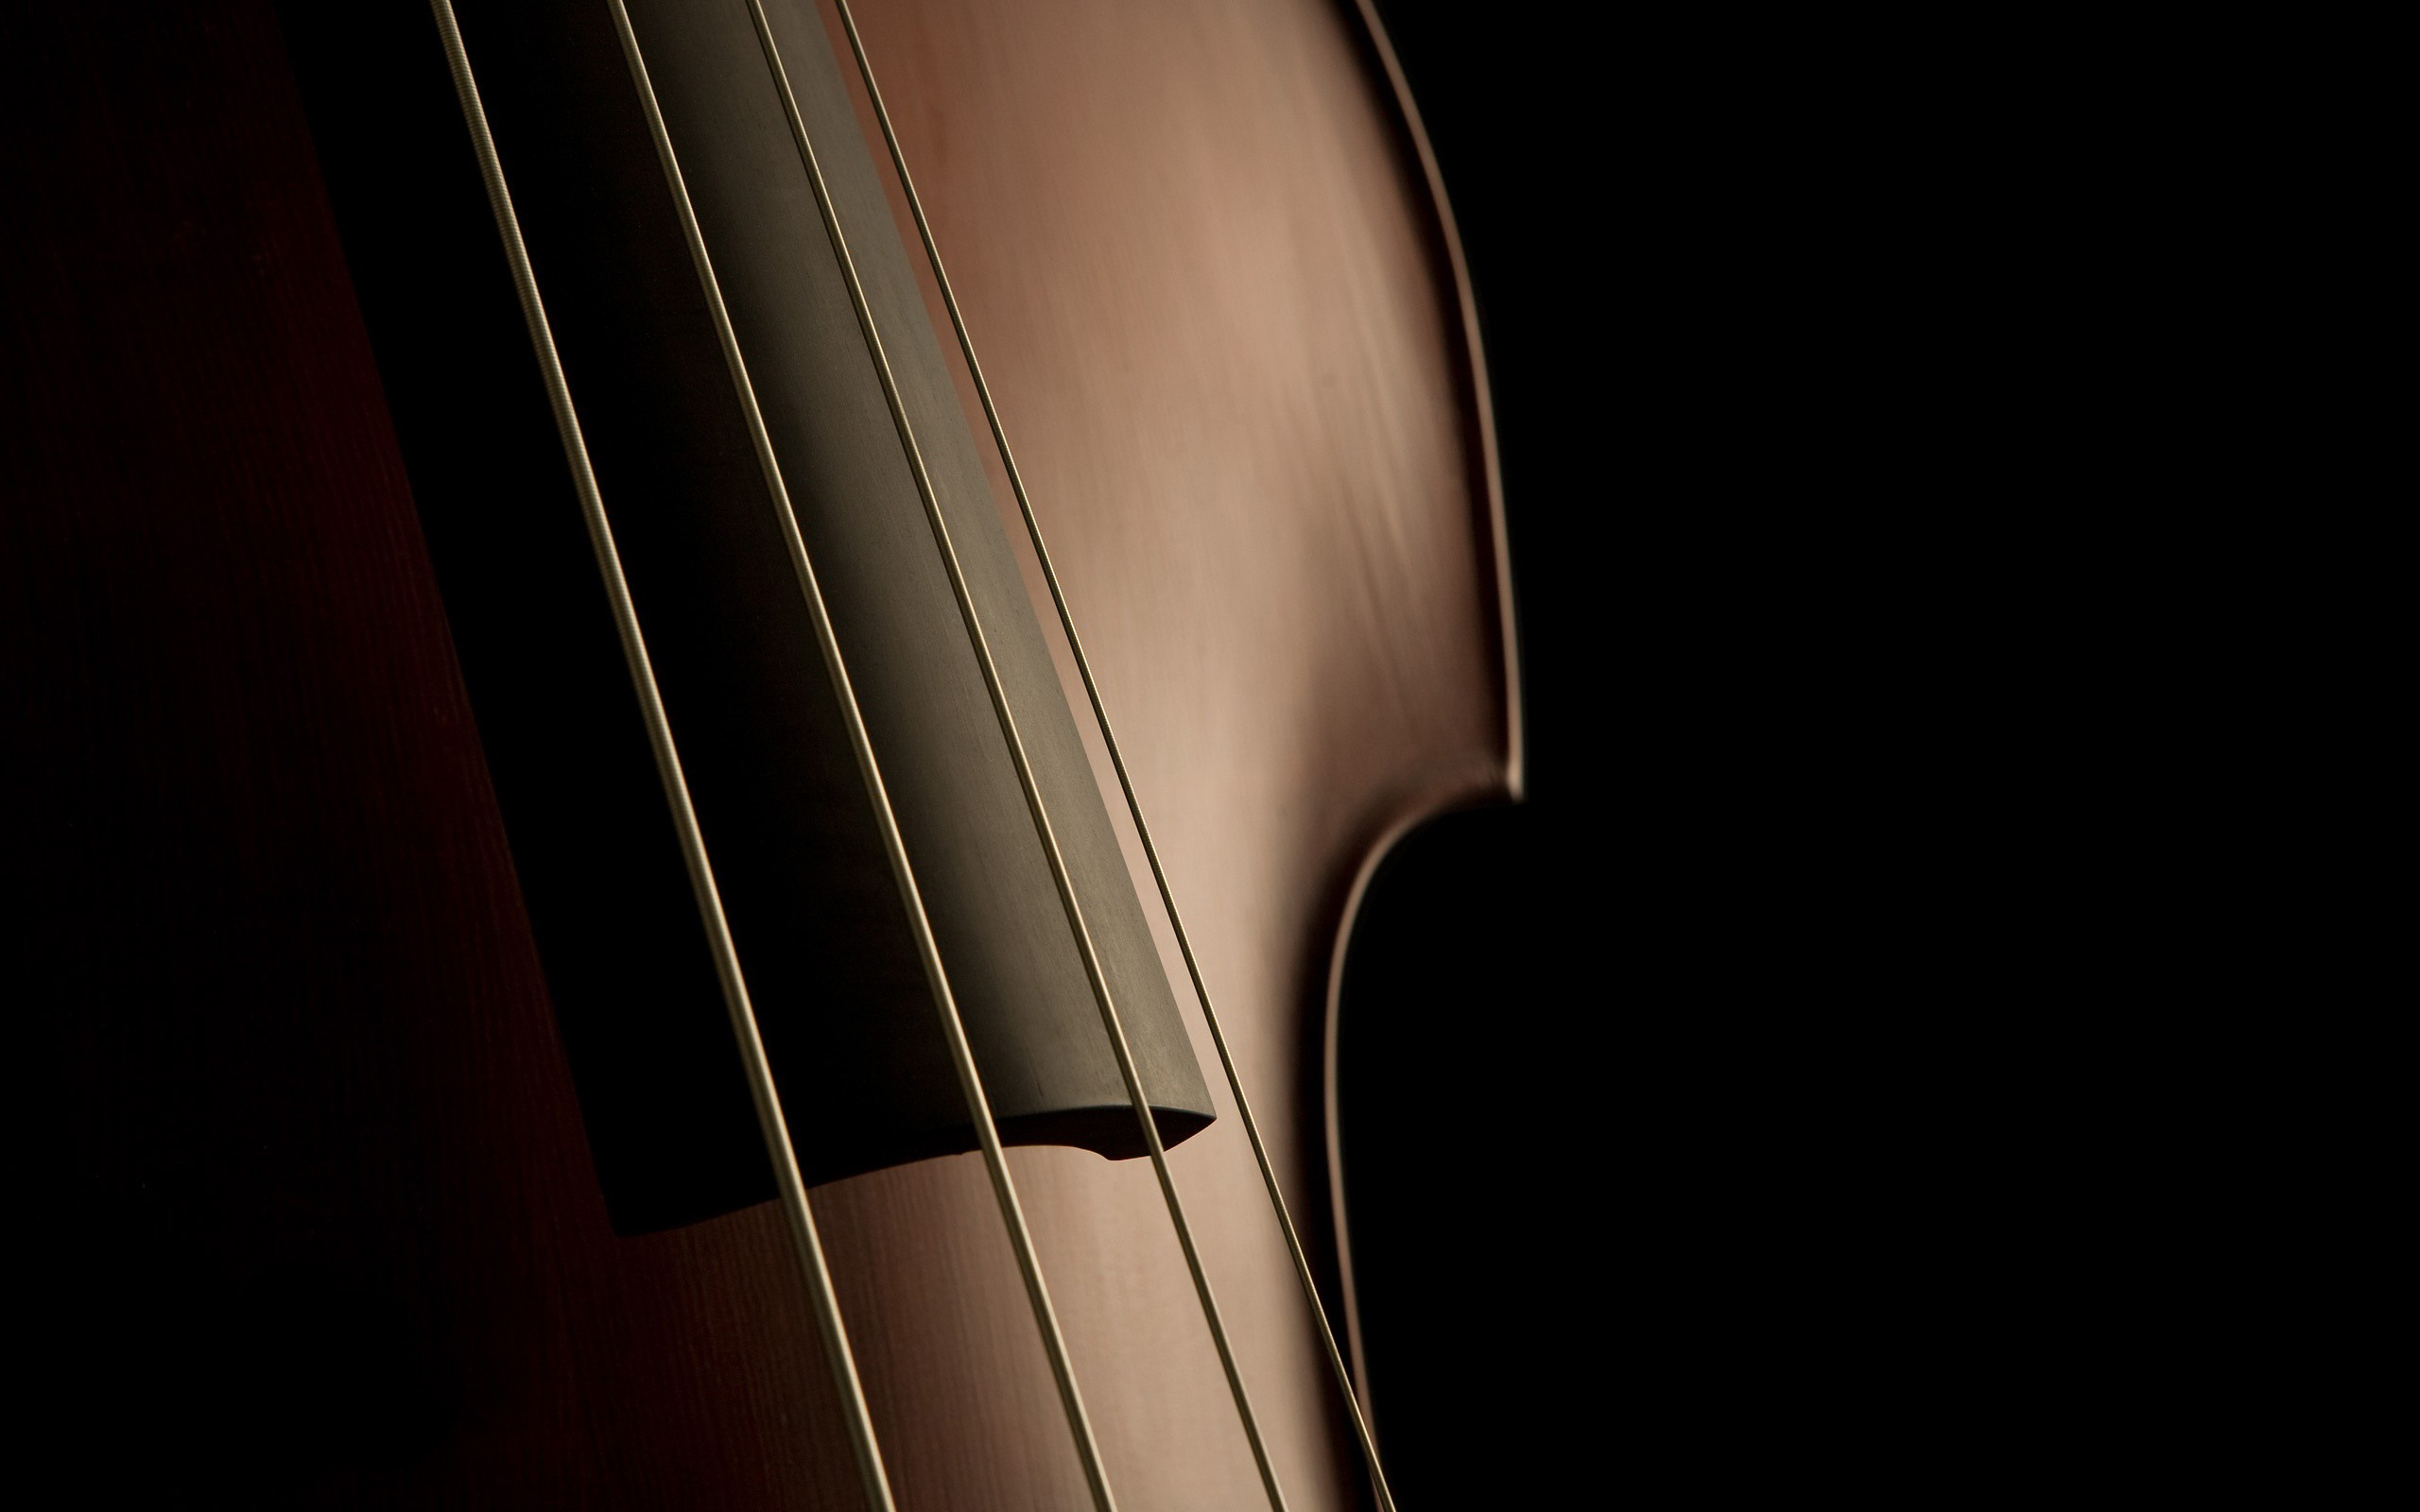 Violin Wallpapers 34038 2560x1600 px ~ HDWallSource.com